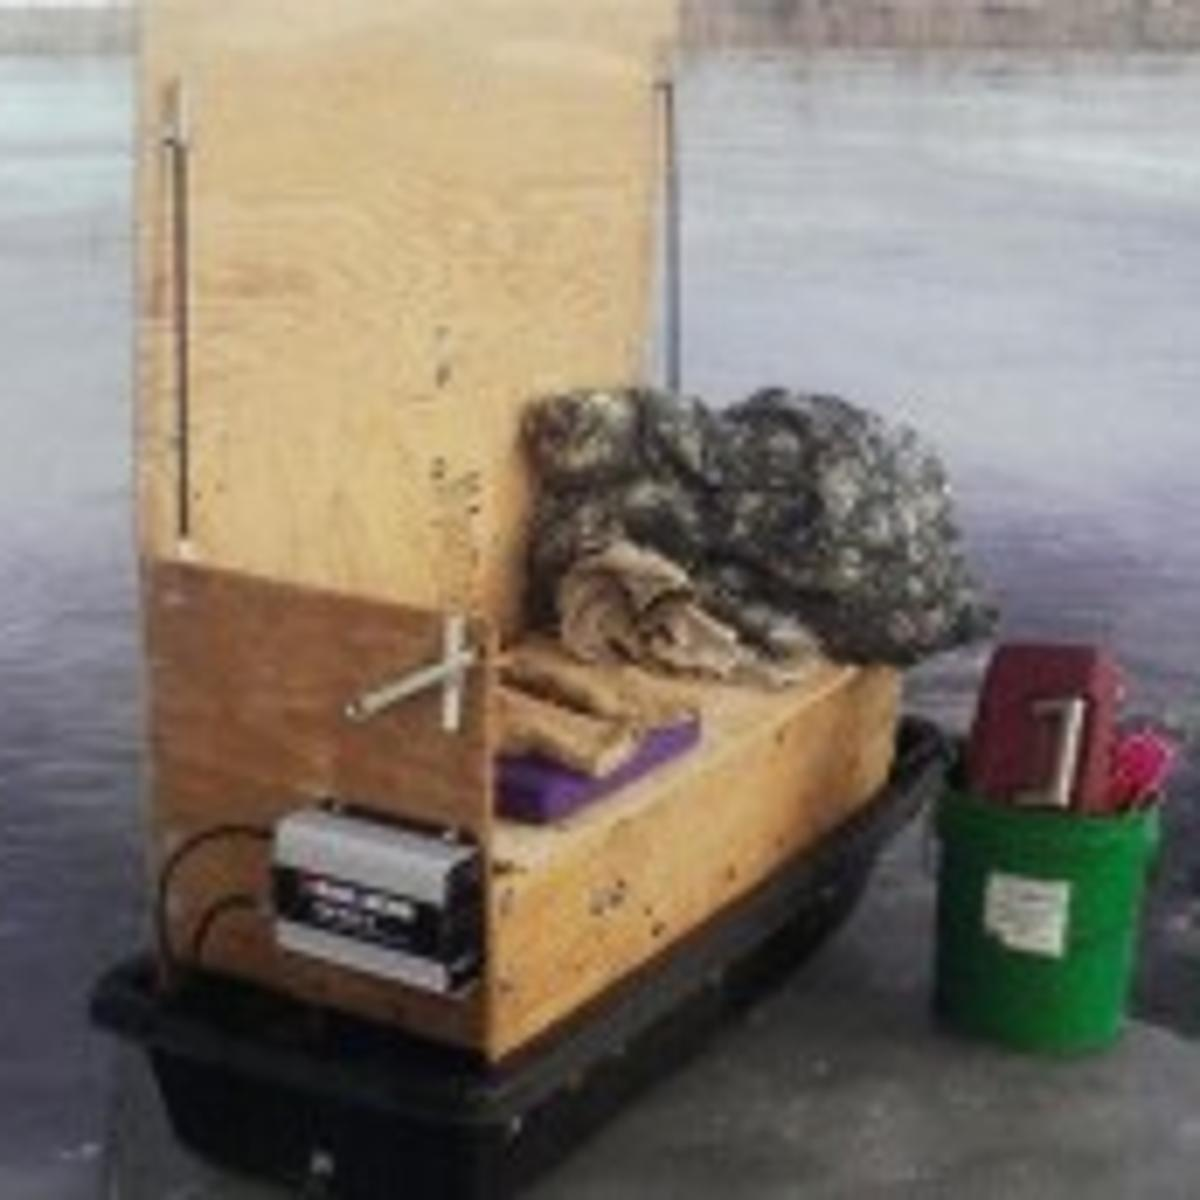 Ice-fishing sled's an off-season building project | Outdoors